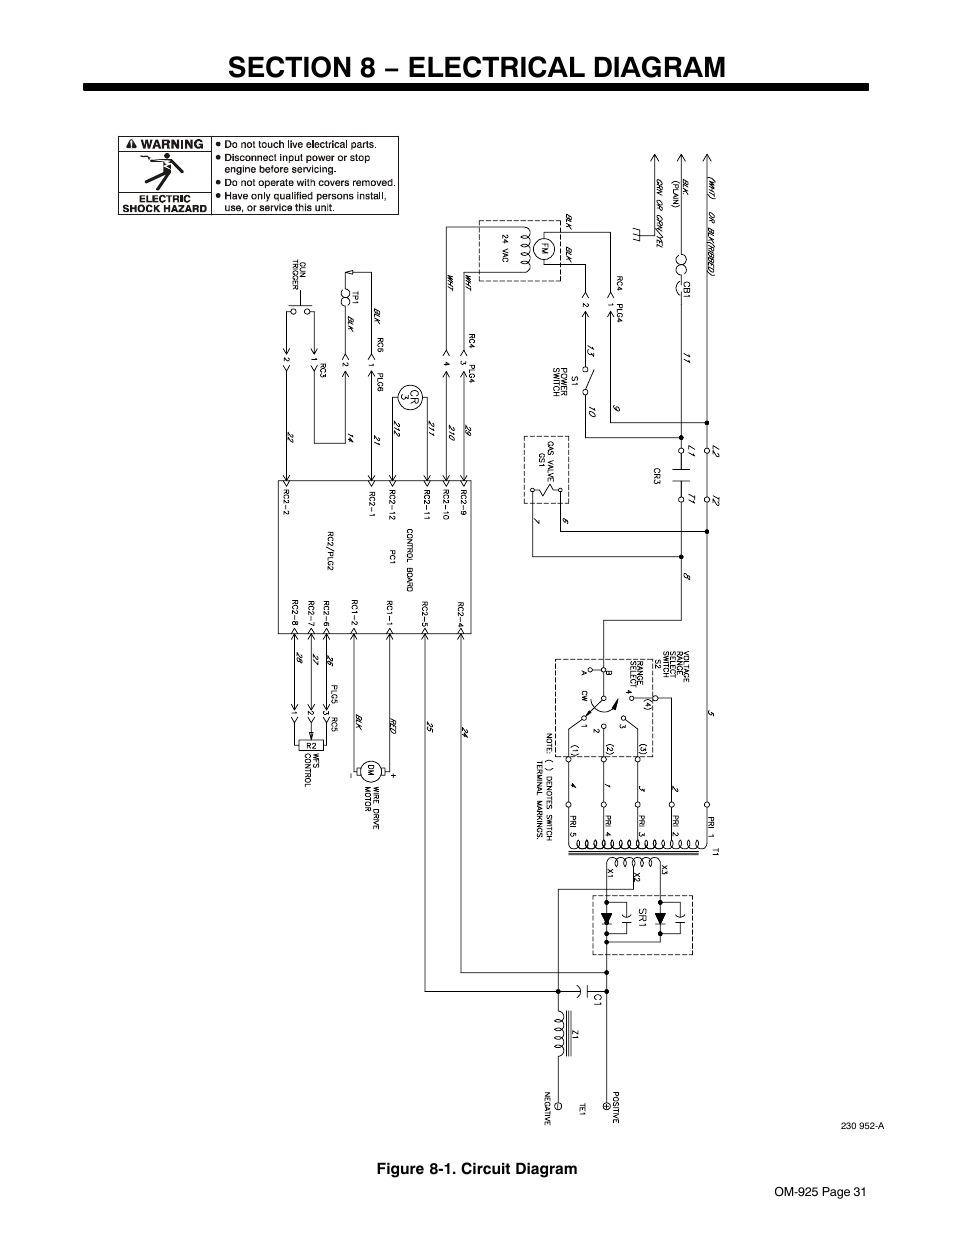 bobcat 743b parts diagram  diagrams  wiring diagram images